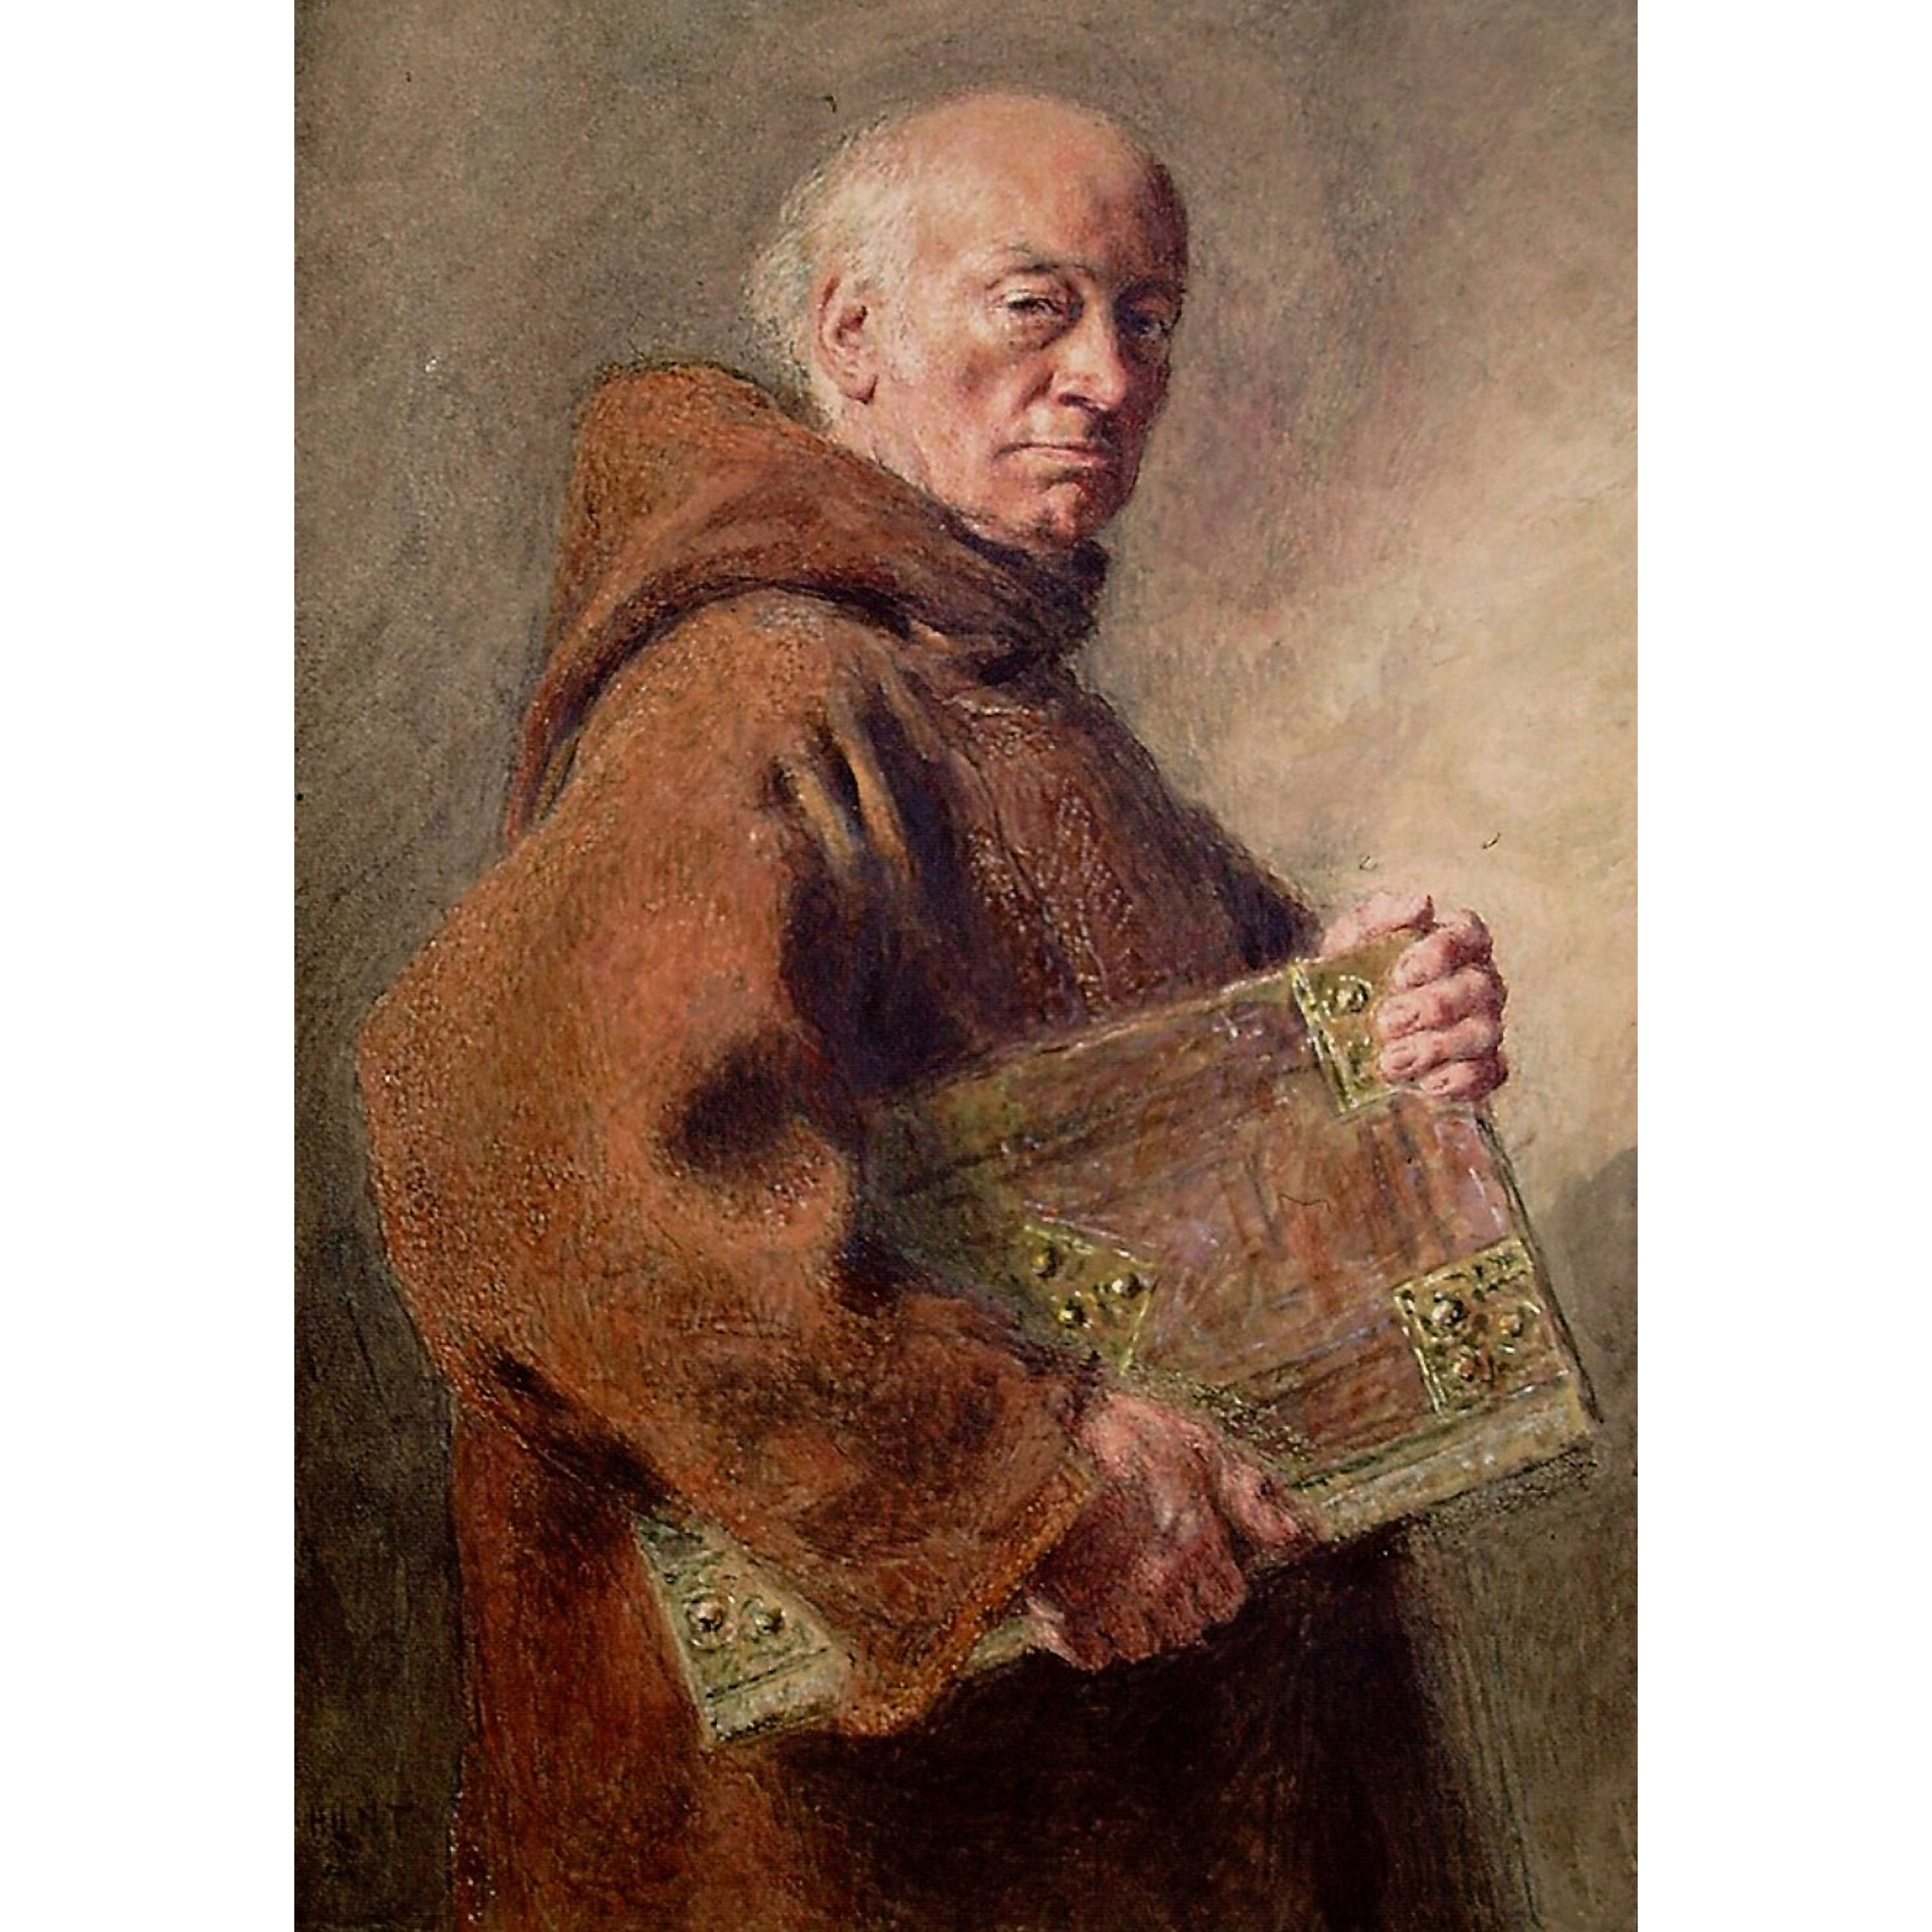 Monk by William Hunt